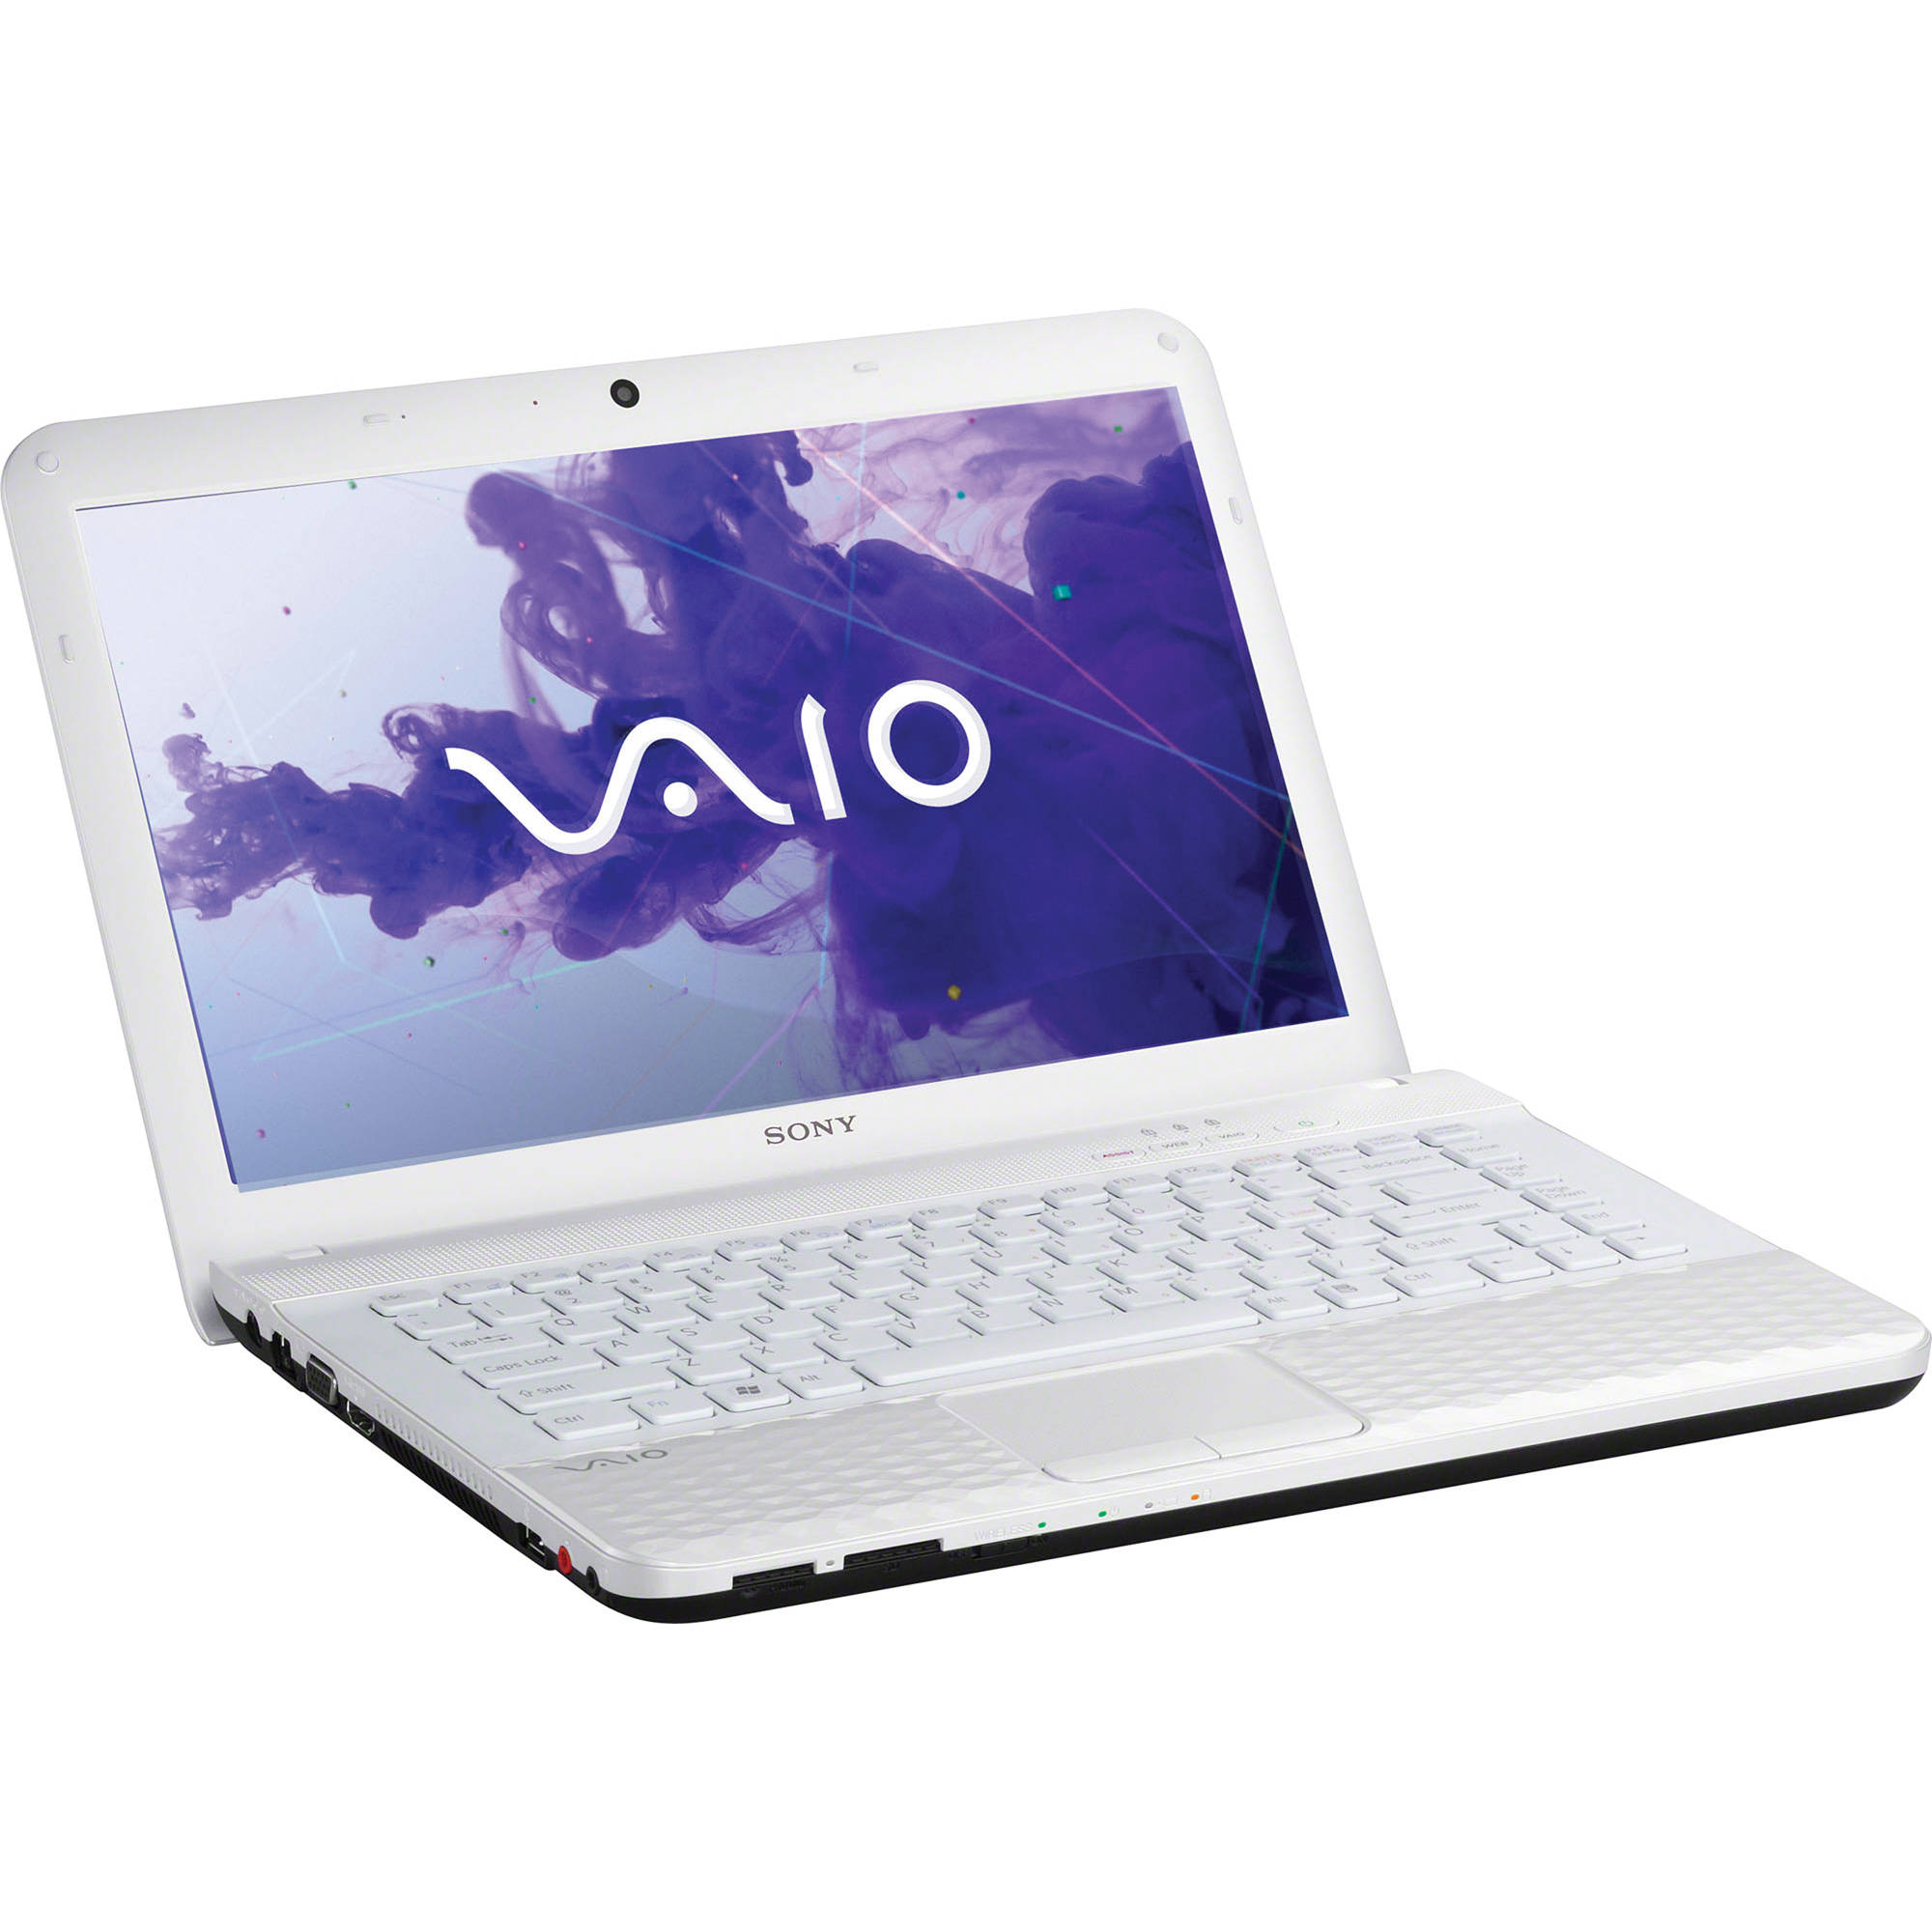 Sony Vaio VPCEG32FX/B Camera Driver Download